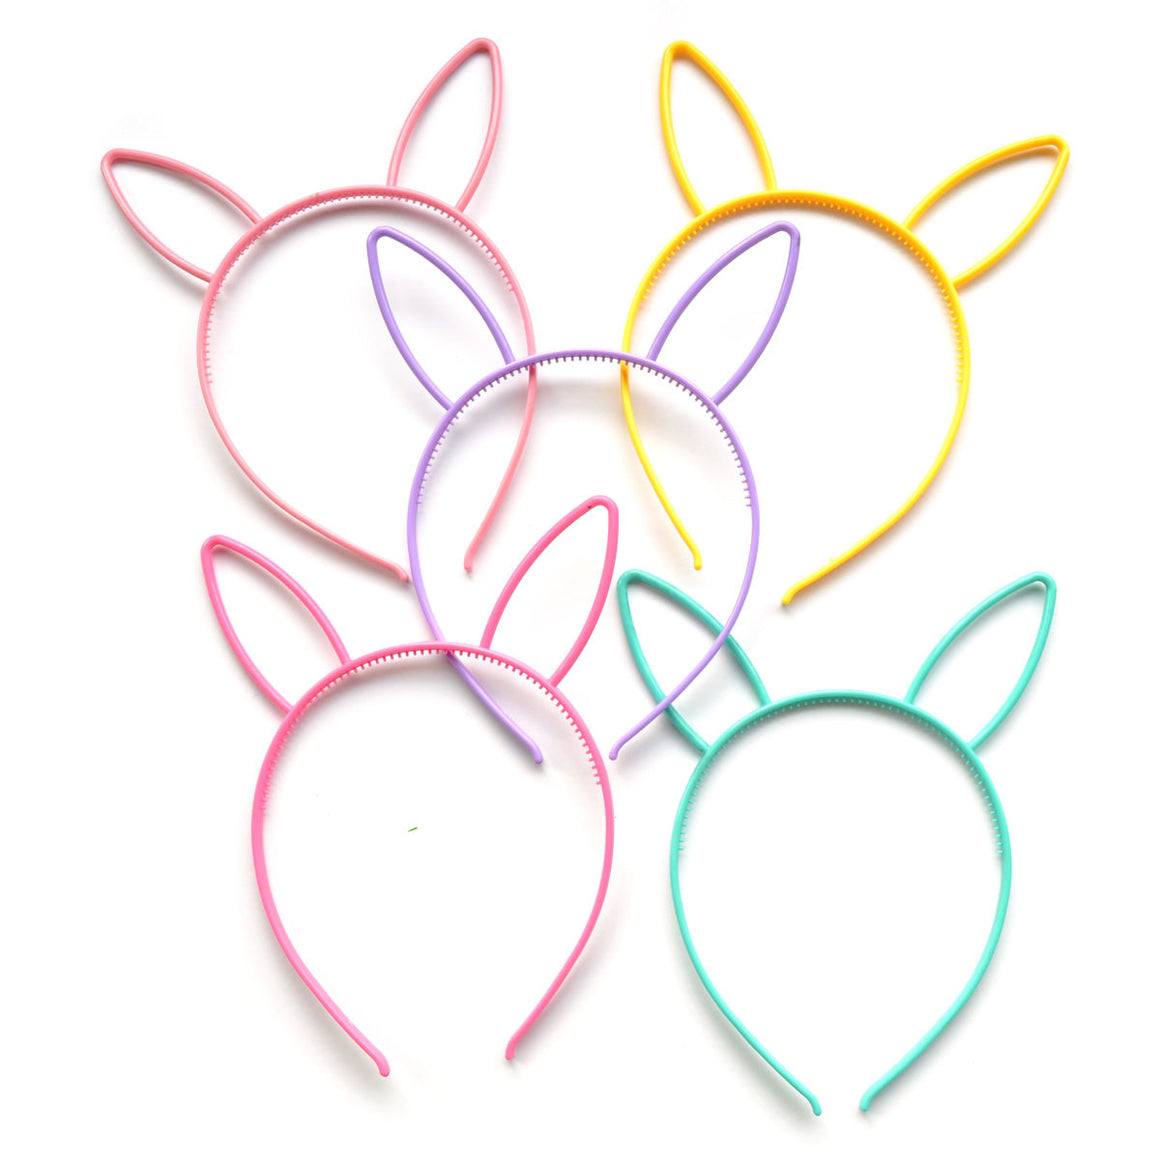 bunny headband // hello shiso hair accessories for girls